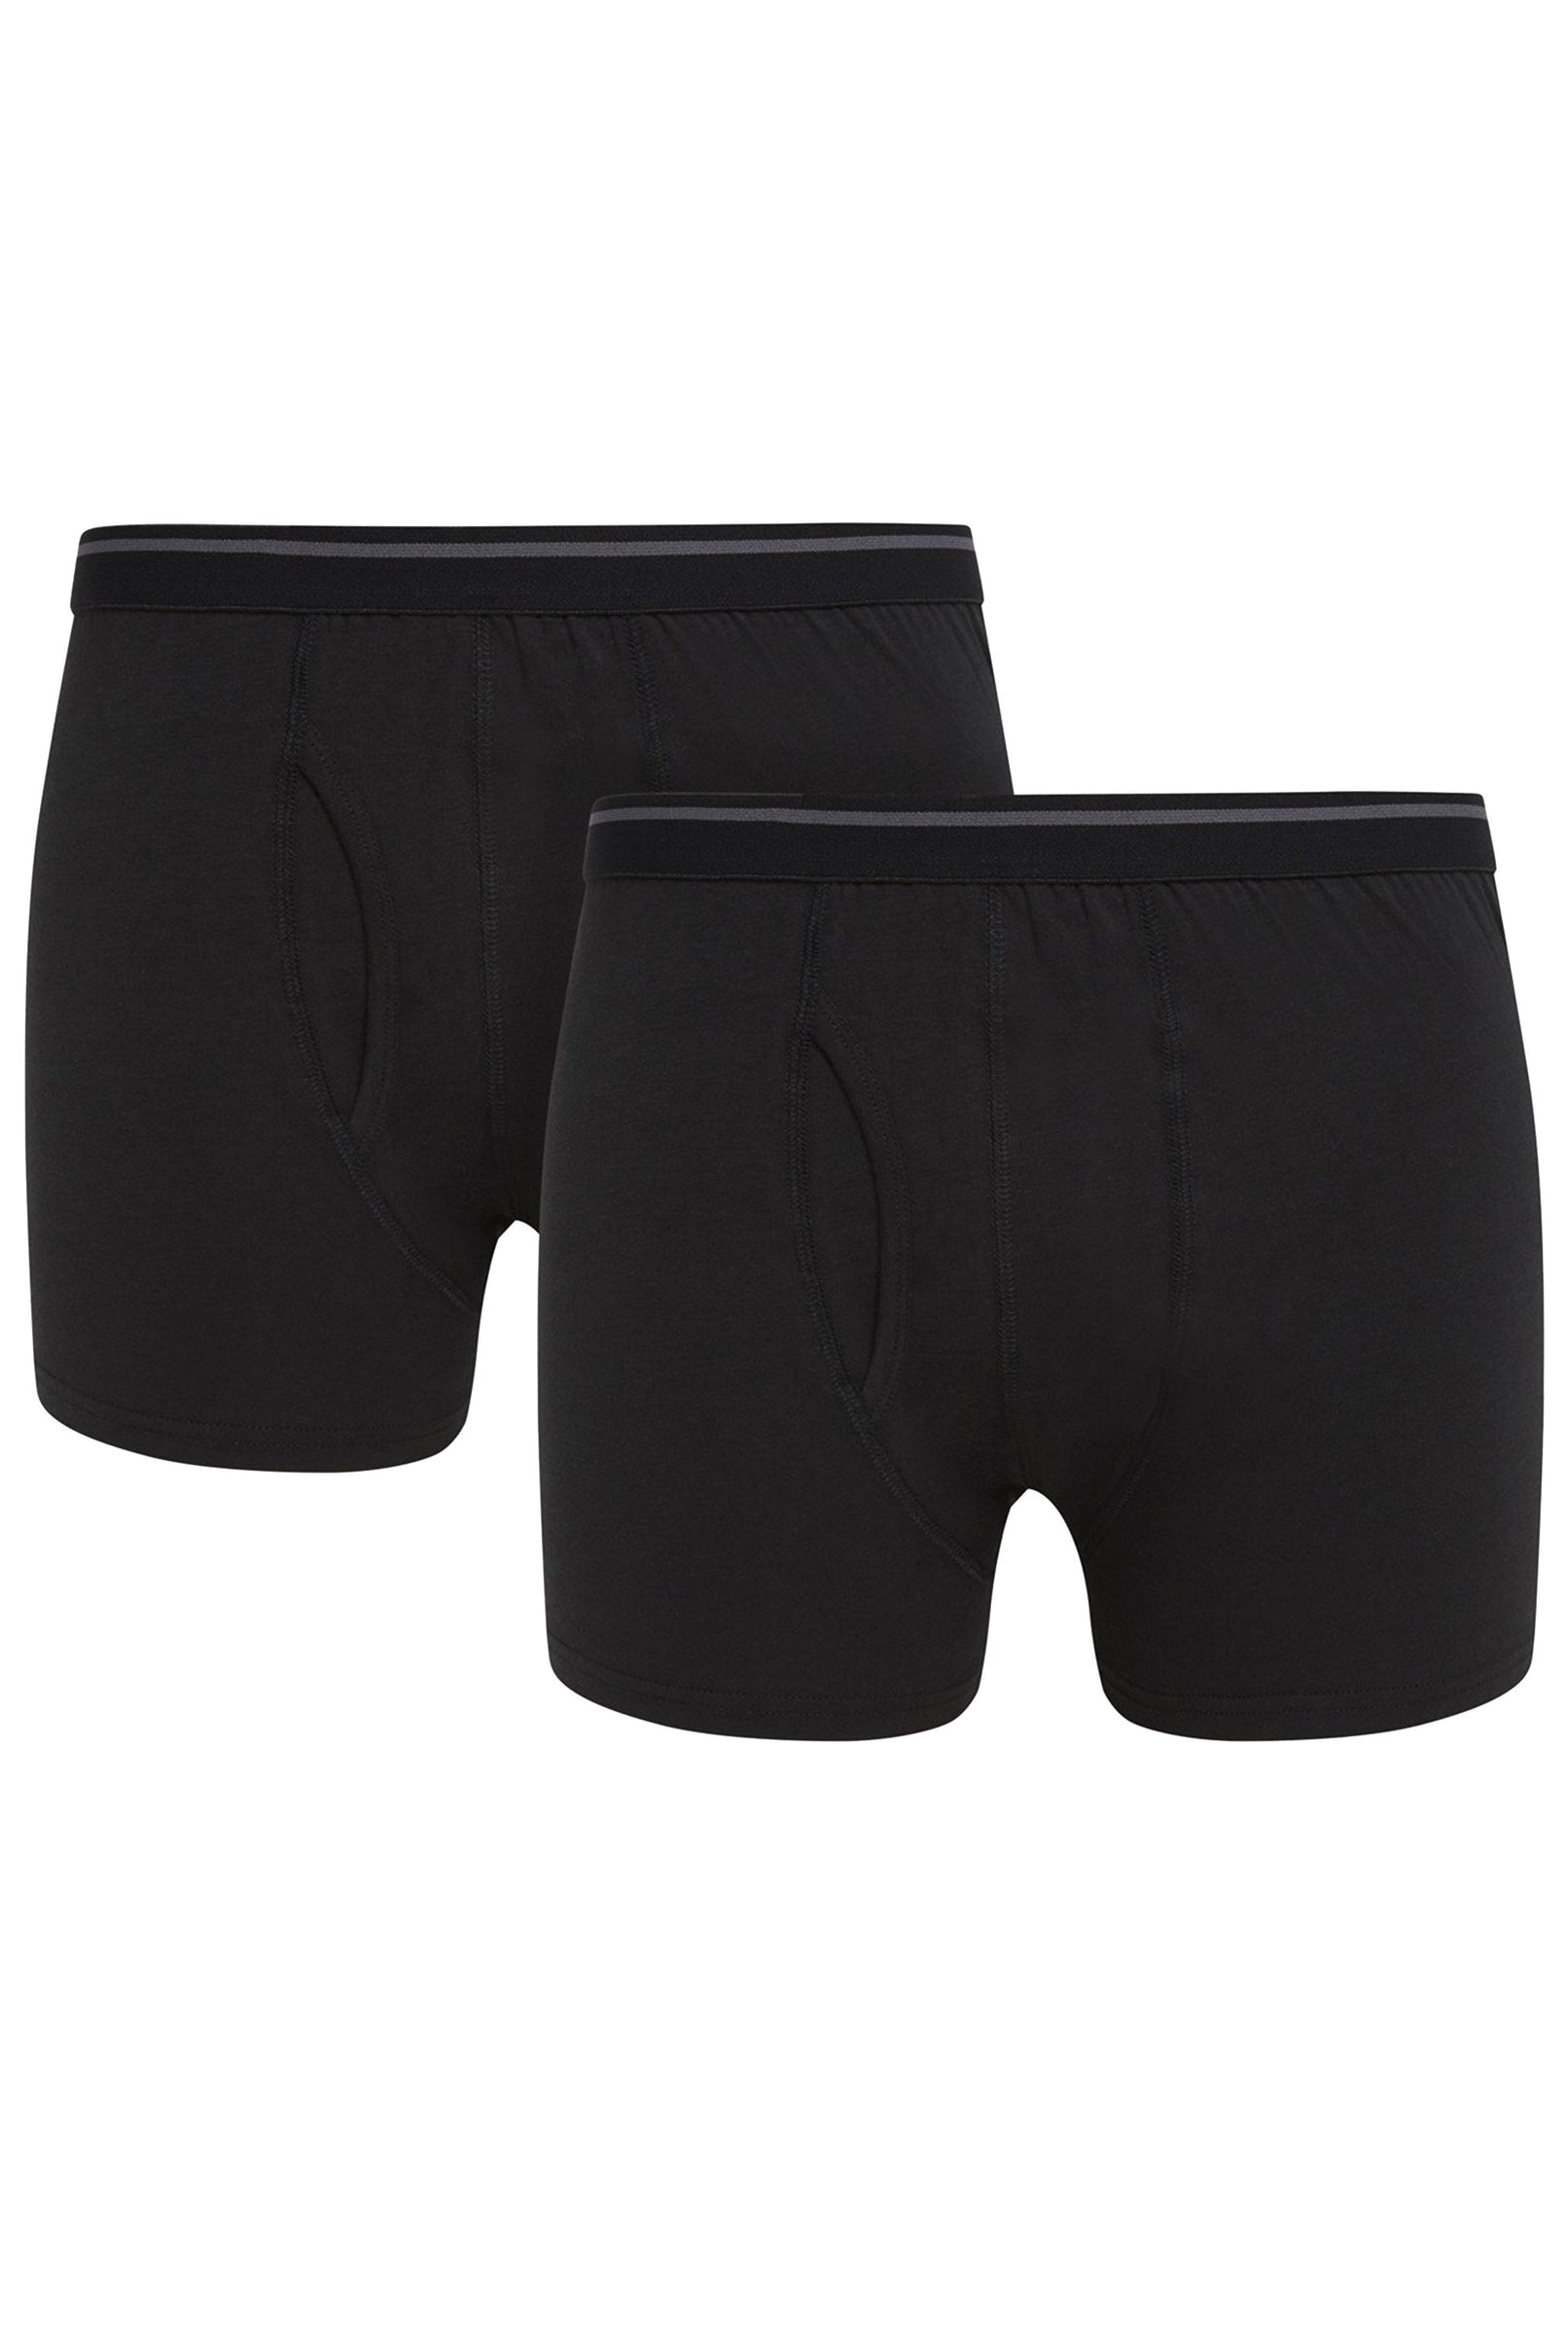 Black Cotton Lycra Hipster Trunk